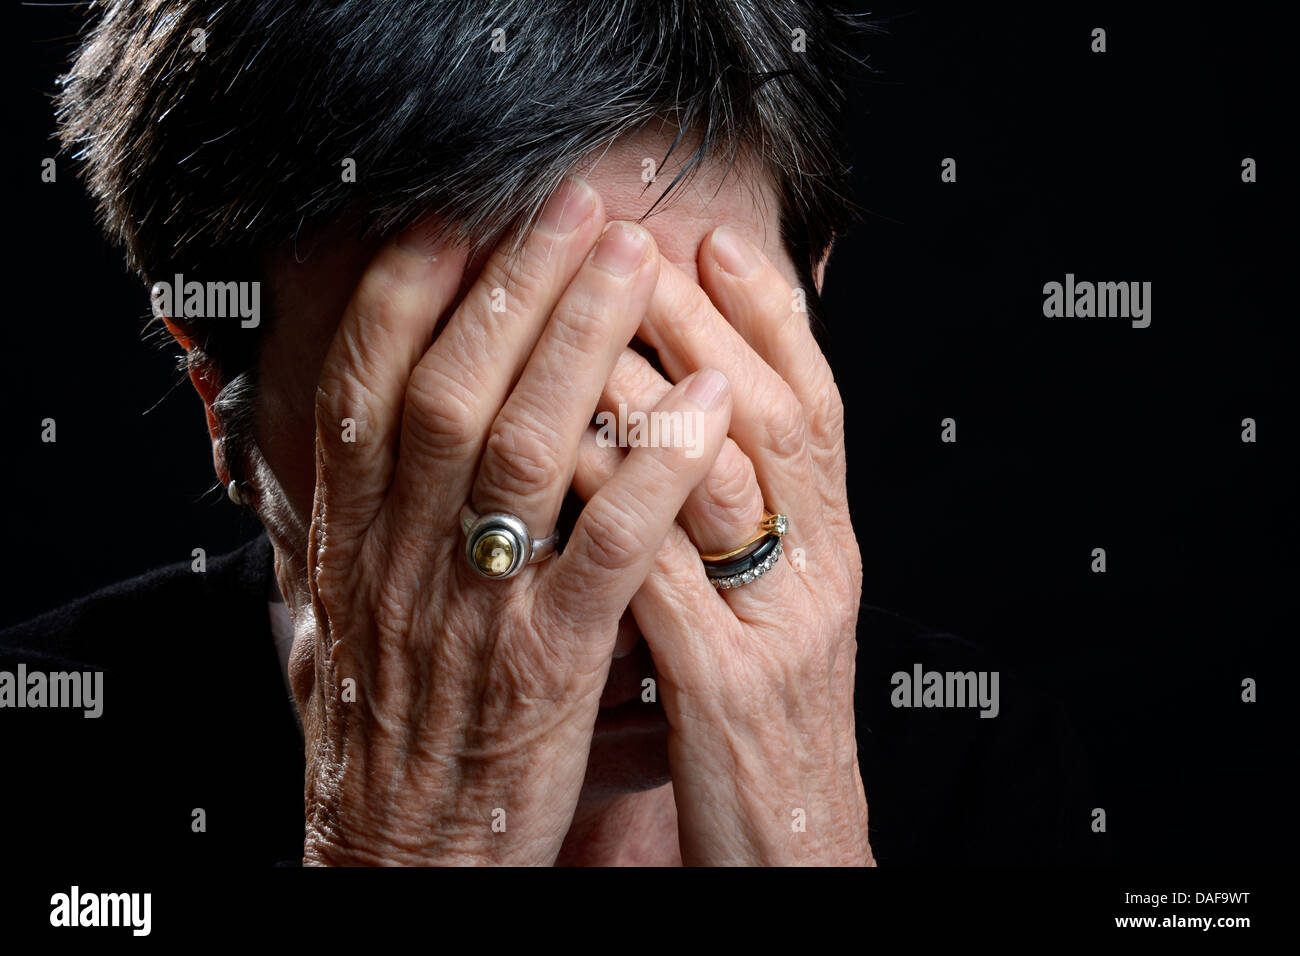 Sad old woman covering her face with her hands / crying, mental health concept - Stock Image